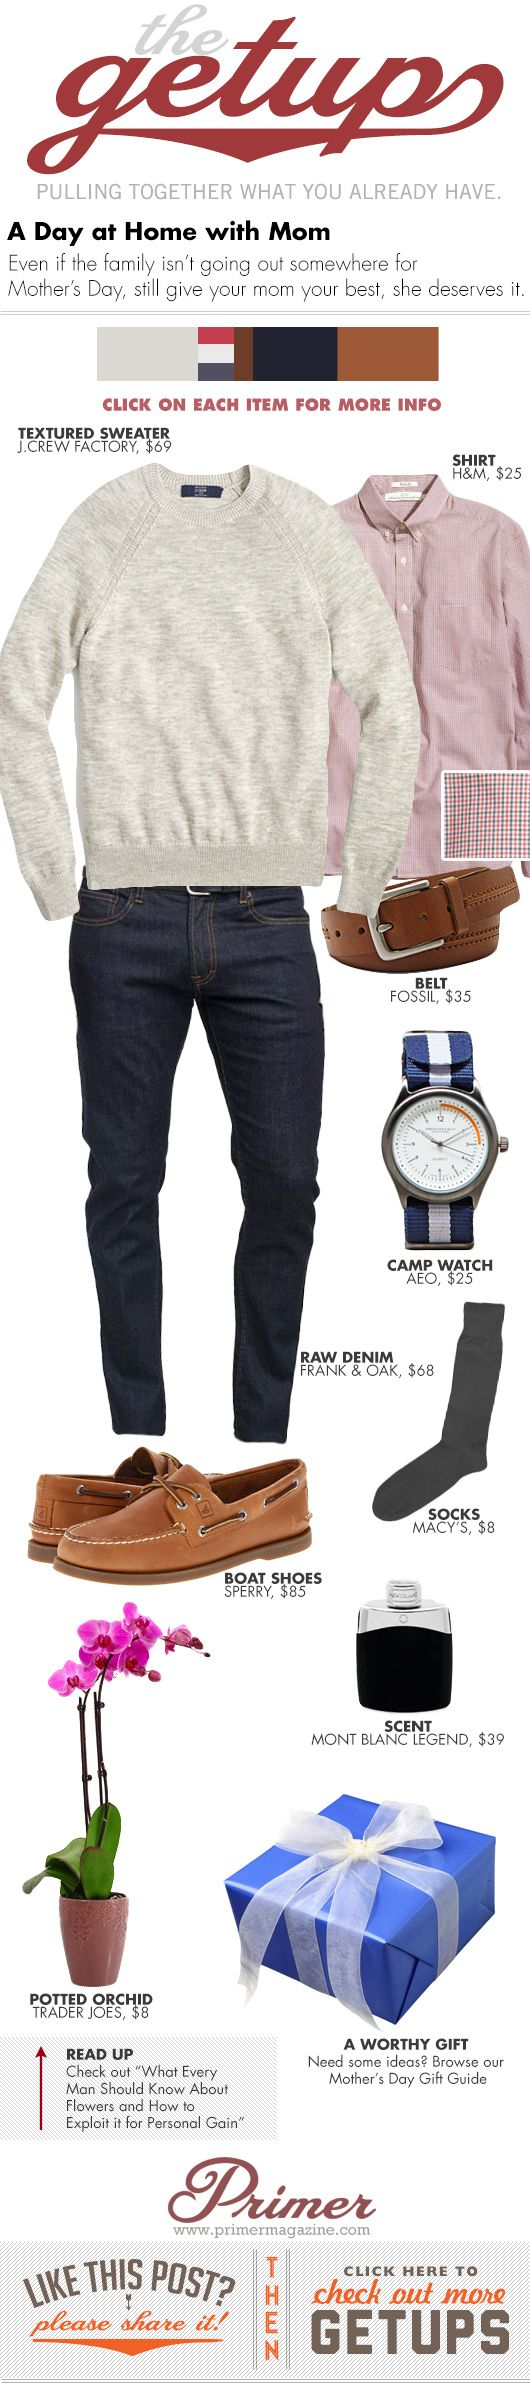 The Getup: A Day at Home with Mom - Primer #MensWear